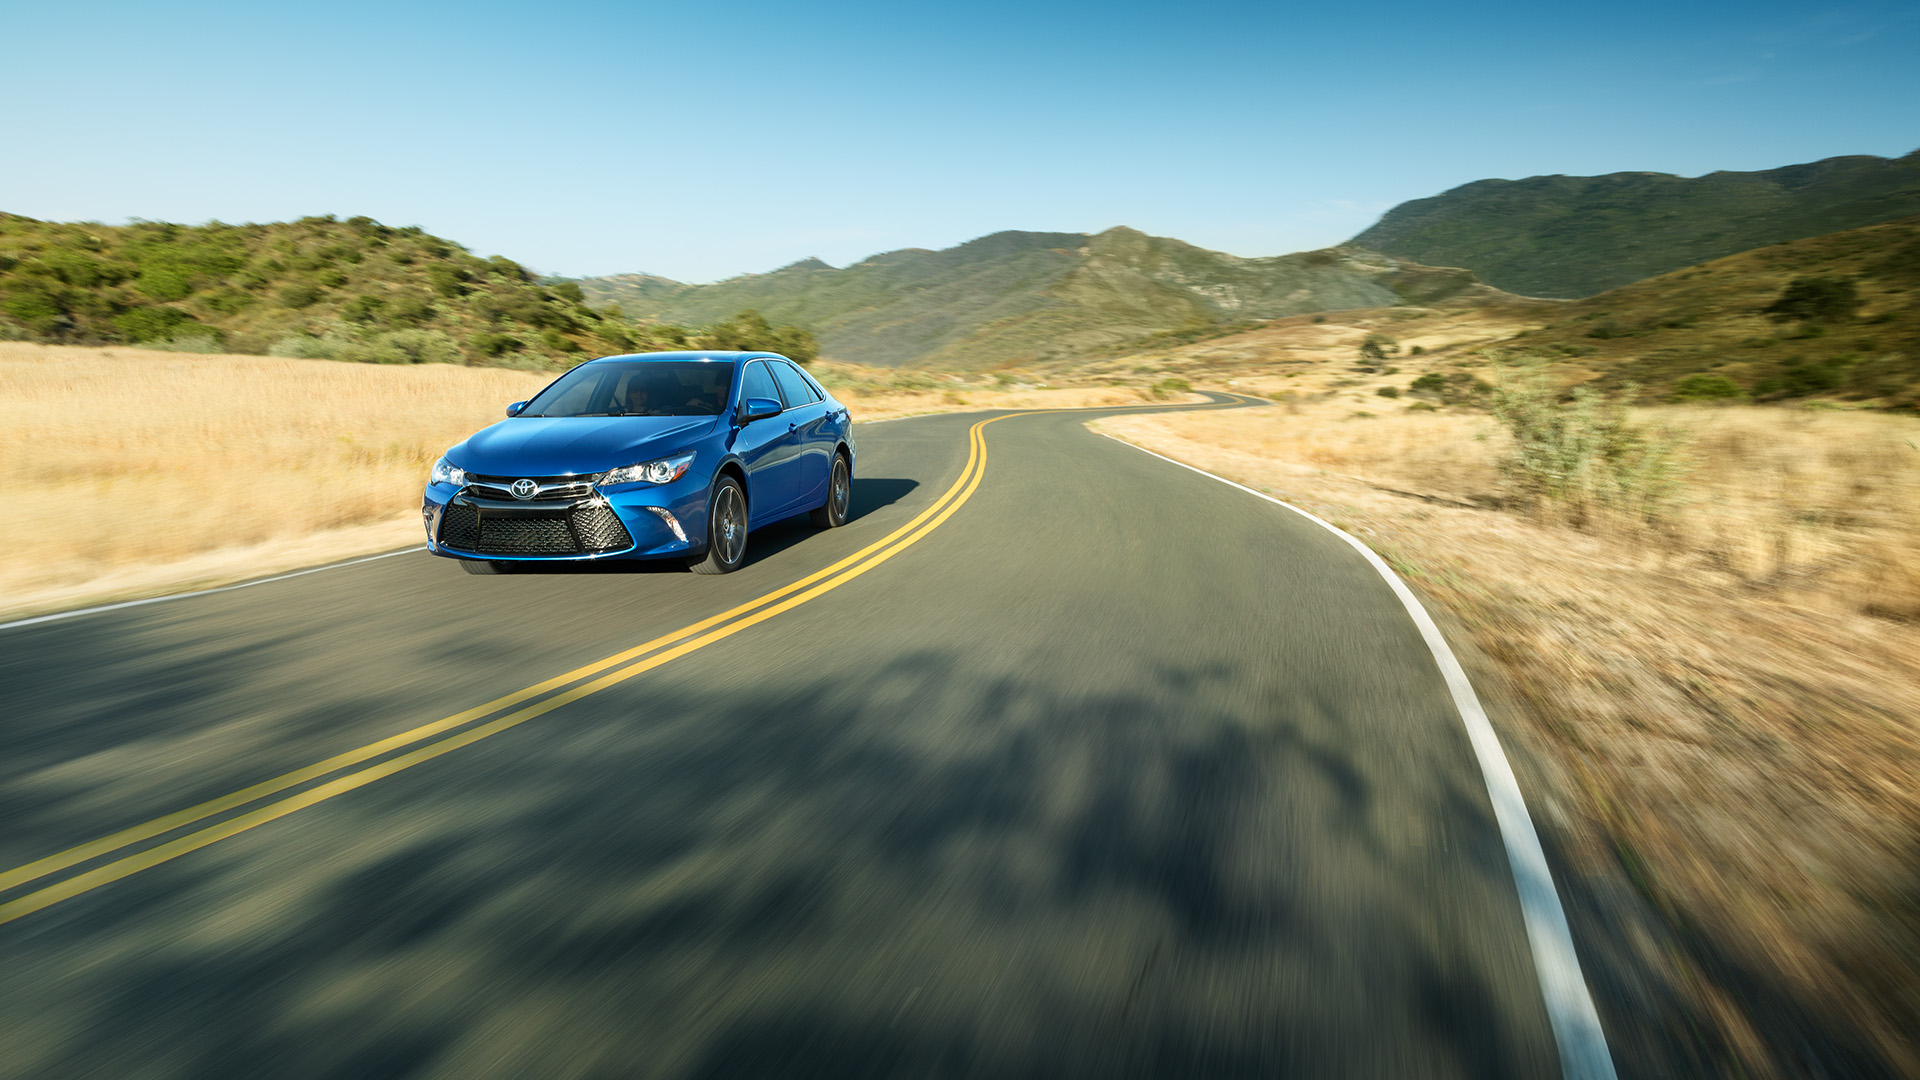 New Toyota Camry Hybrid For Sale City Of Industry CA